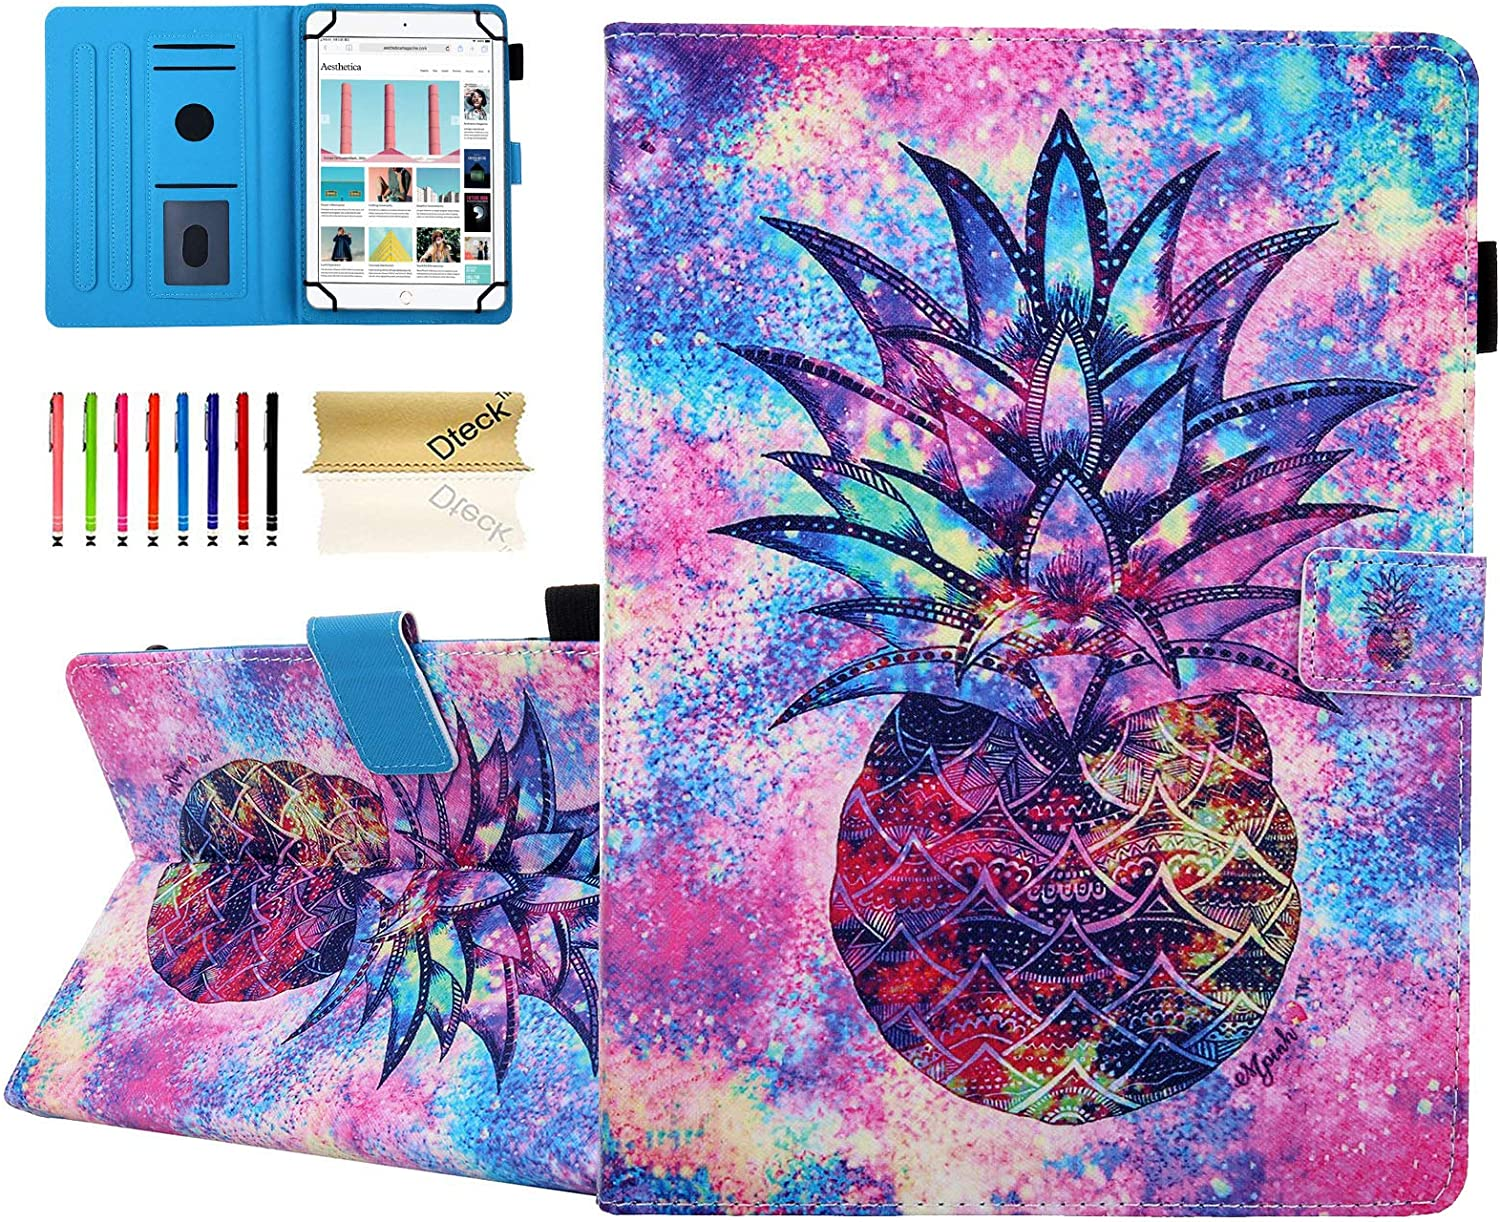 Dteck Universal Case for 7.5-8.5 Inch Tablet - PU Leather Stand Wallet Case for iPad Mini 7.9